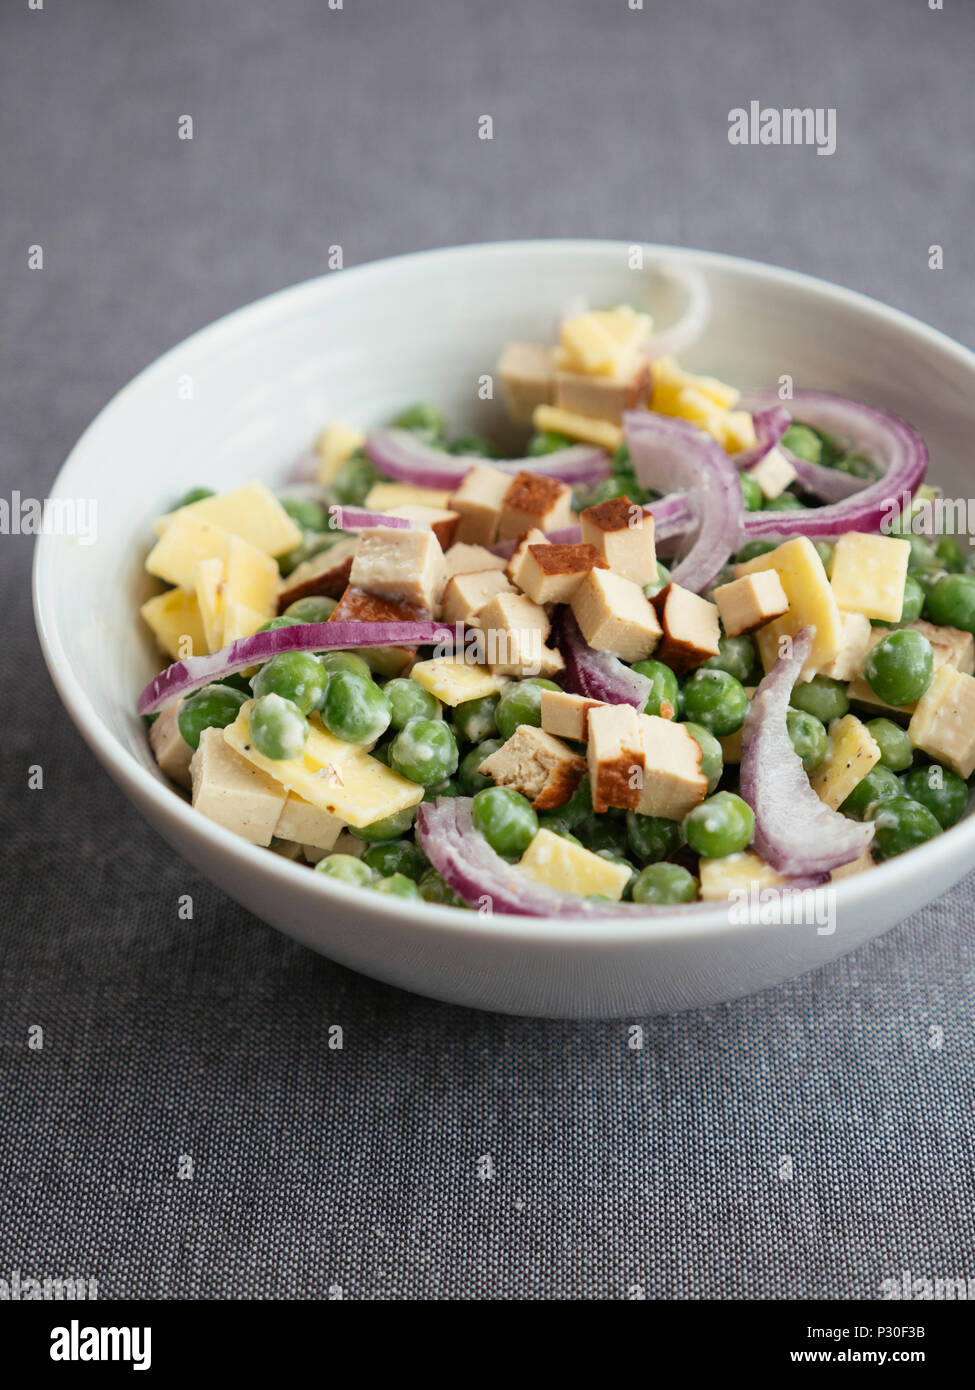 Vegan pea salad with tofu and vegan cheese Stock Photo